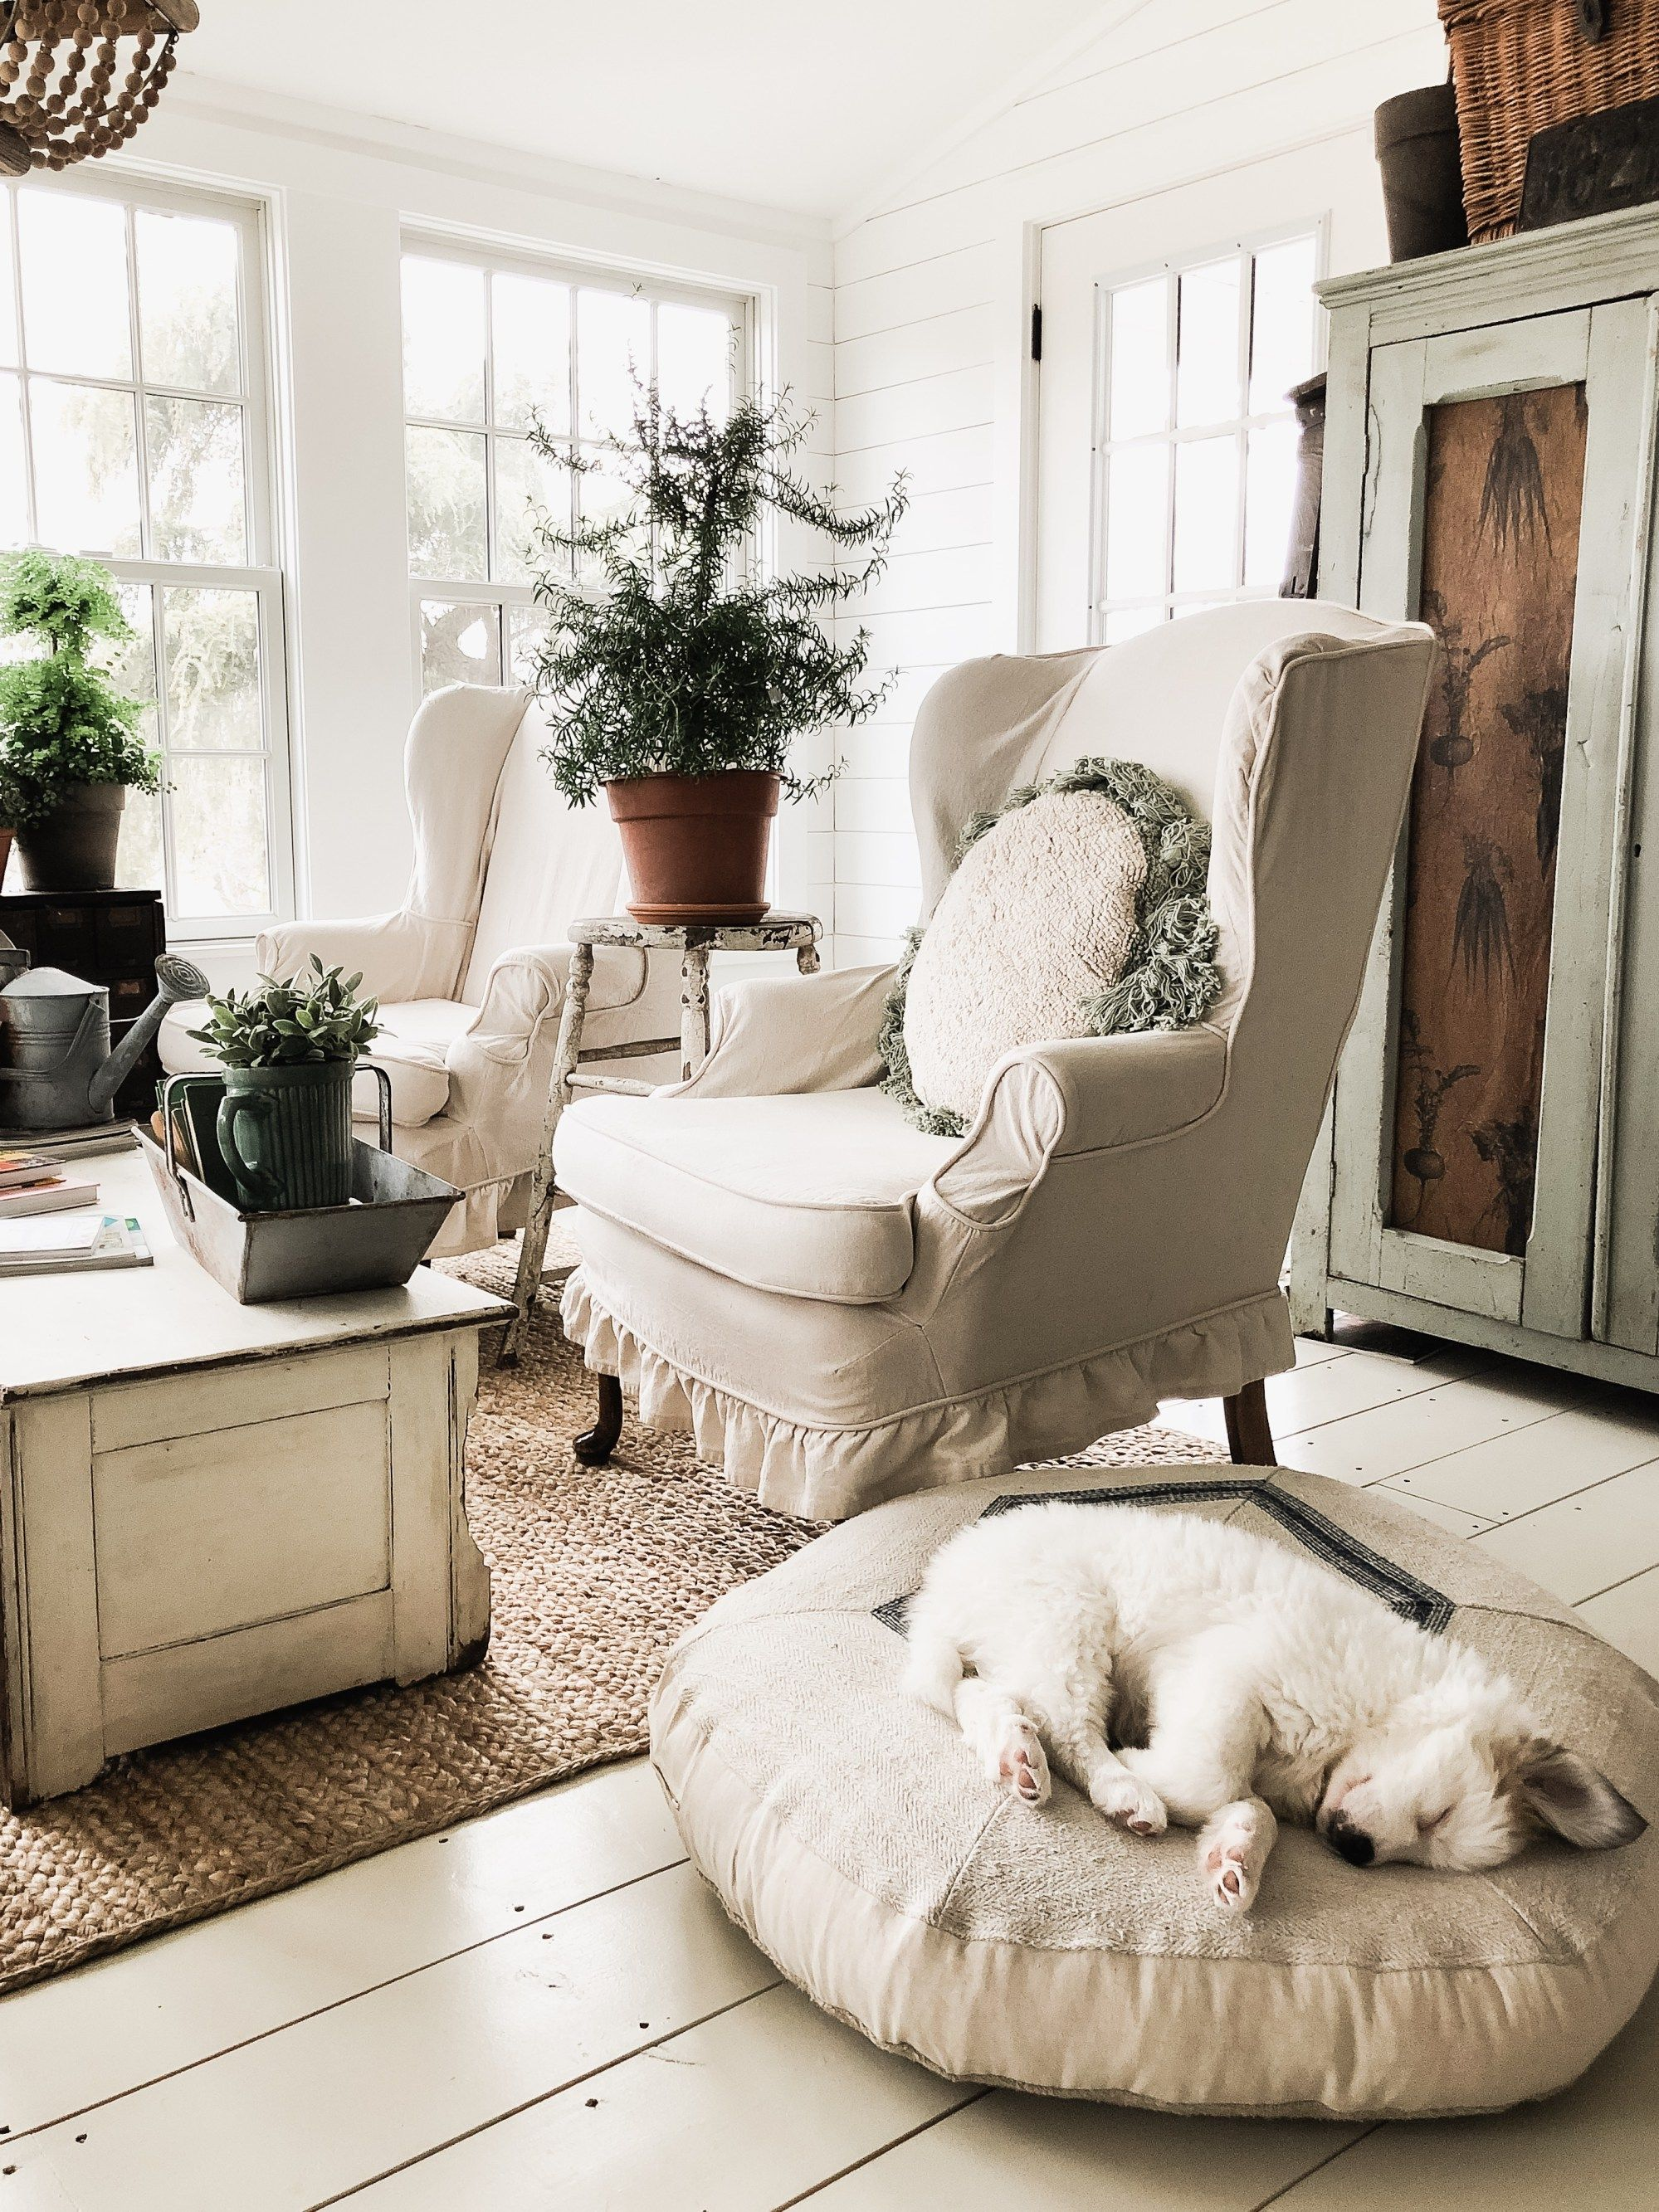 A Different Perspective | Shabby chic decor, Shabby chic ...